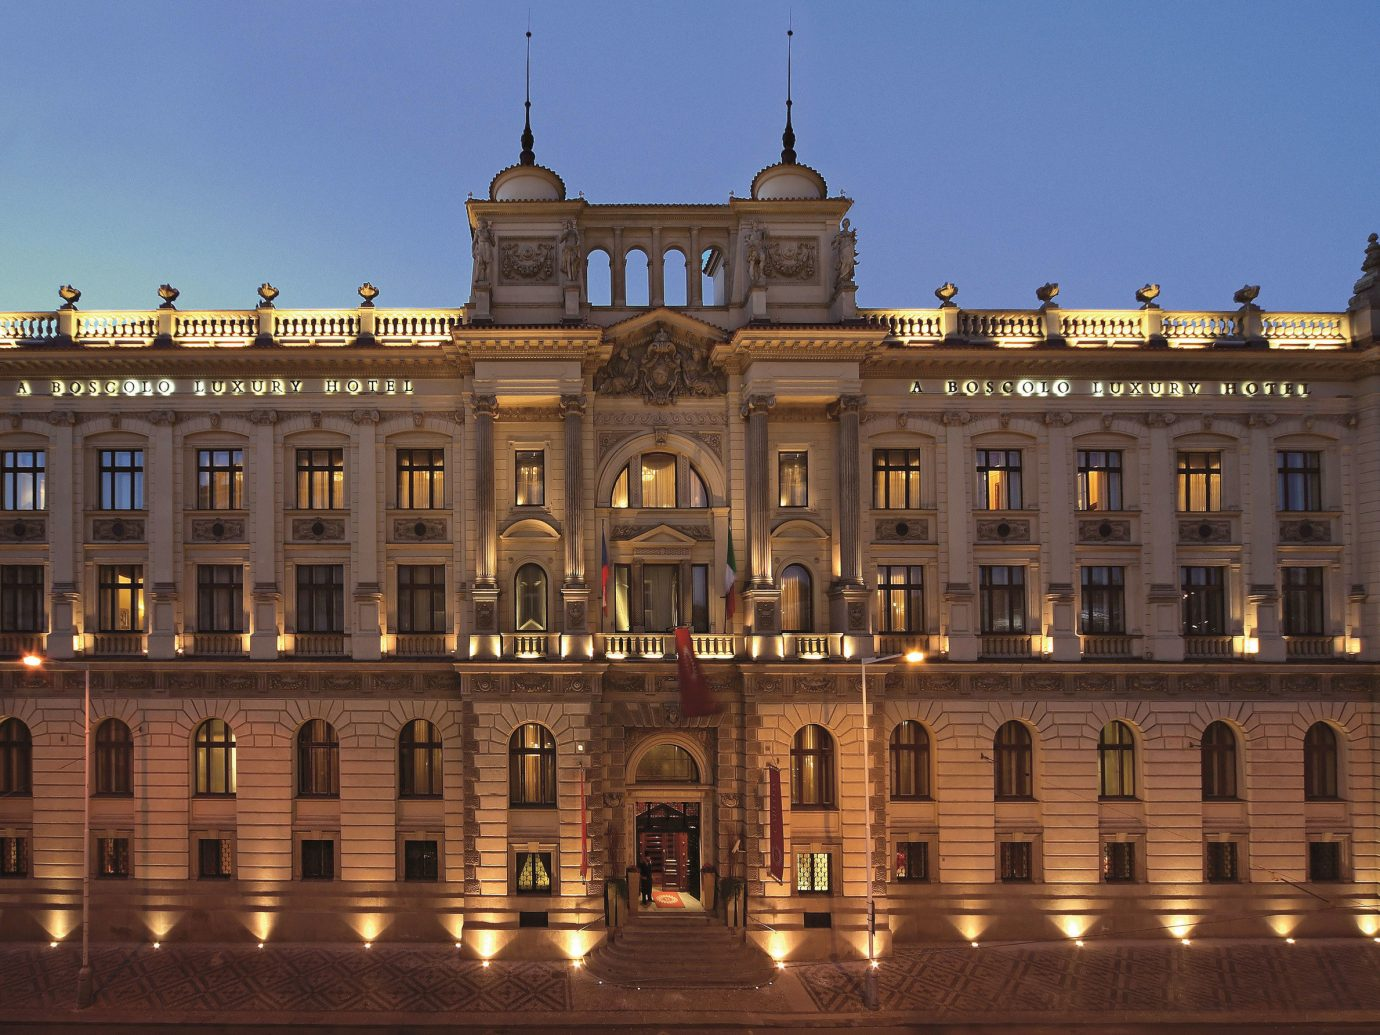 europe Hotels Prague building sky outdoor landmark plaza palace classical architecture Architecture château town square facade government building stately home City estate